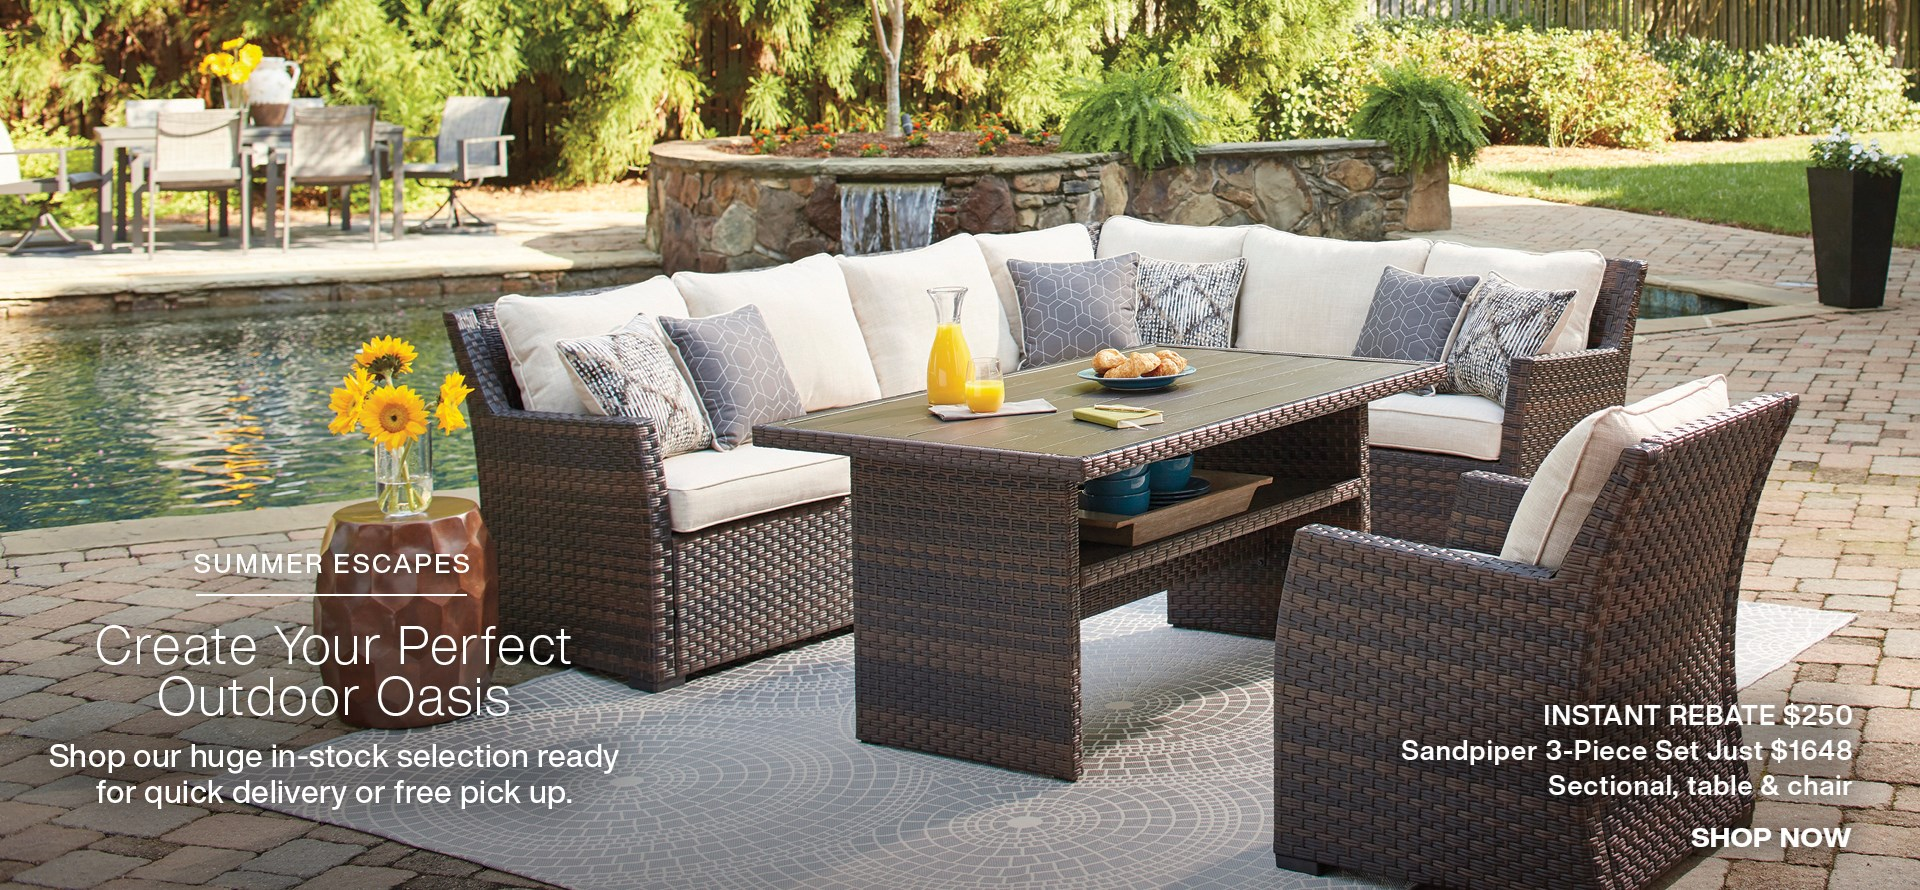 Create your perfect outdoor oasis, shop in-stock outdoor furniture